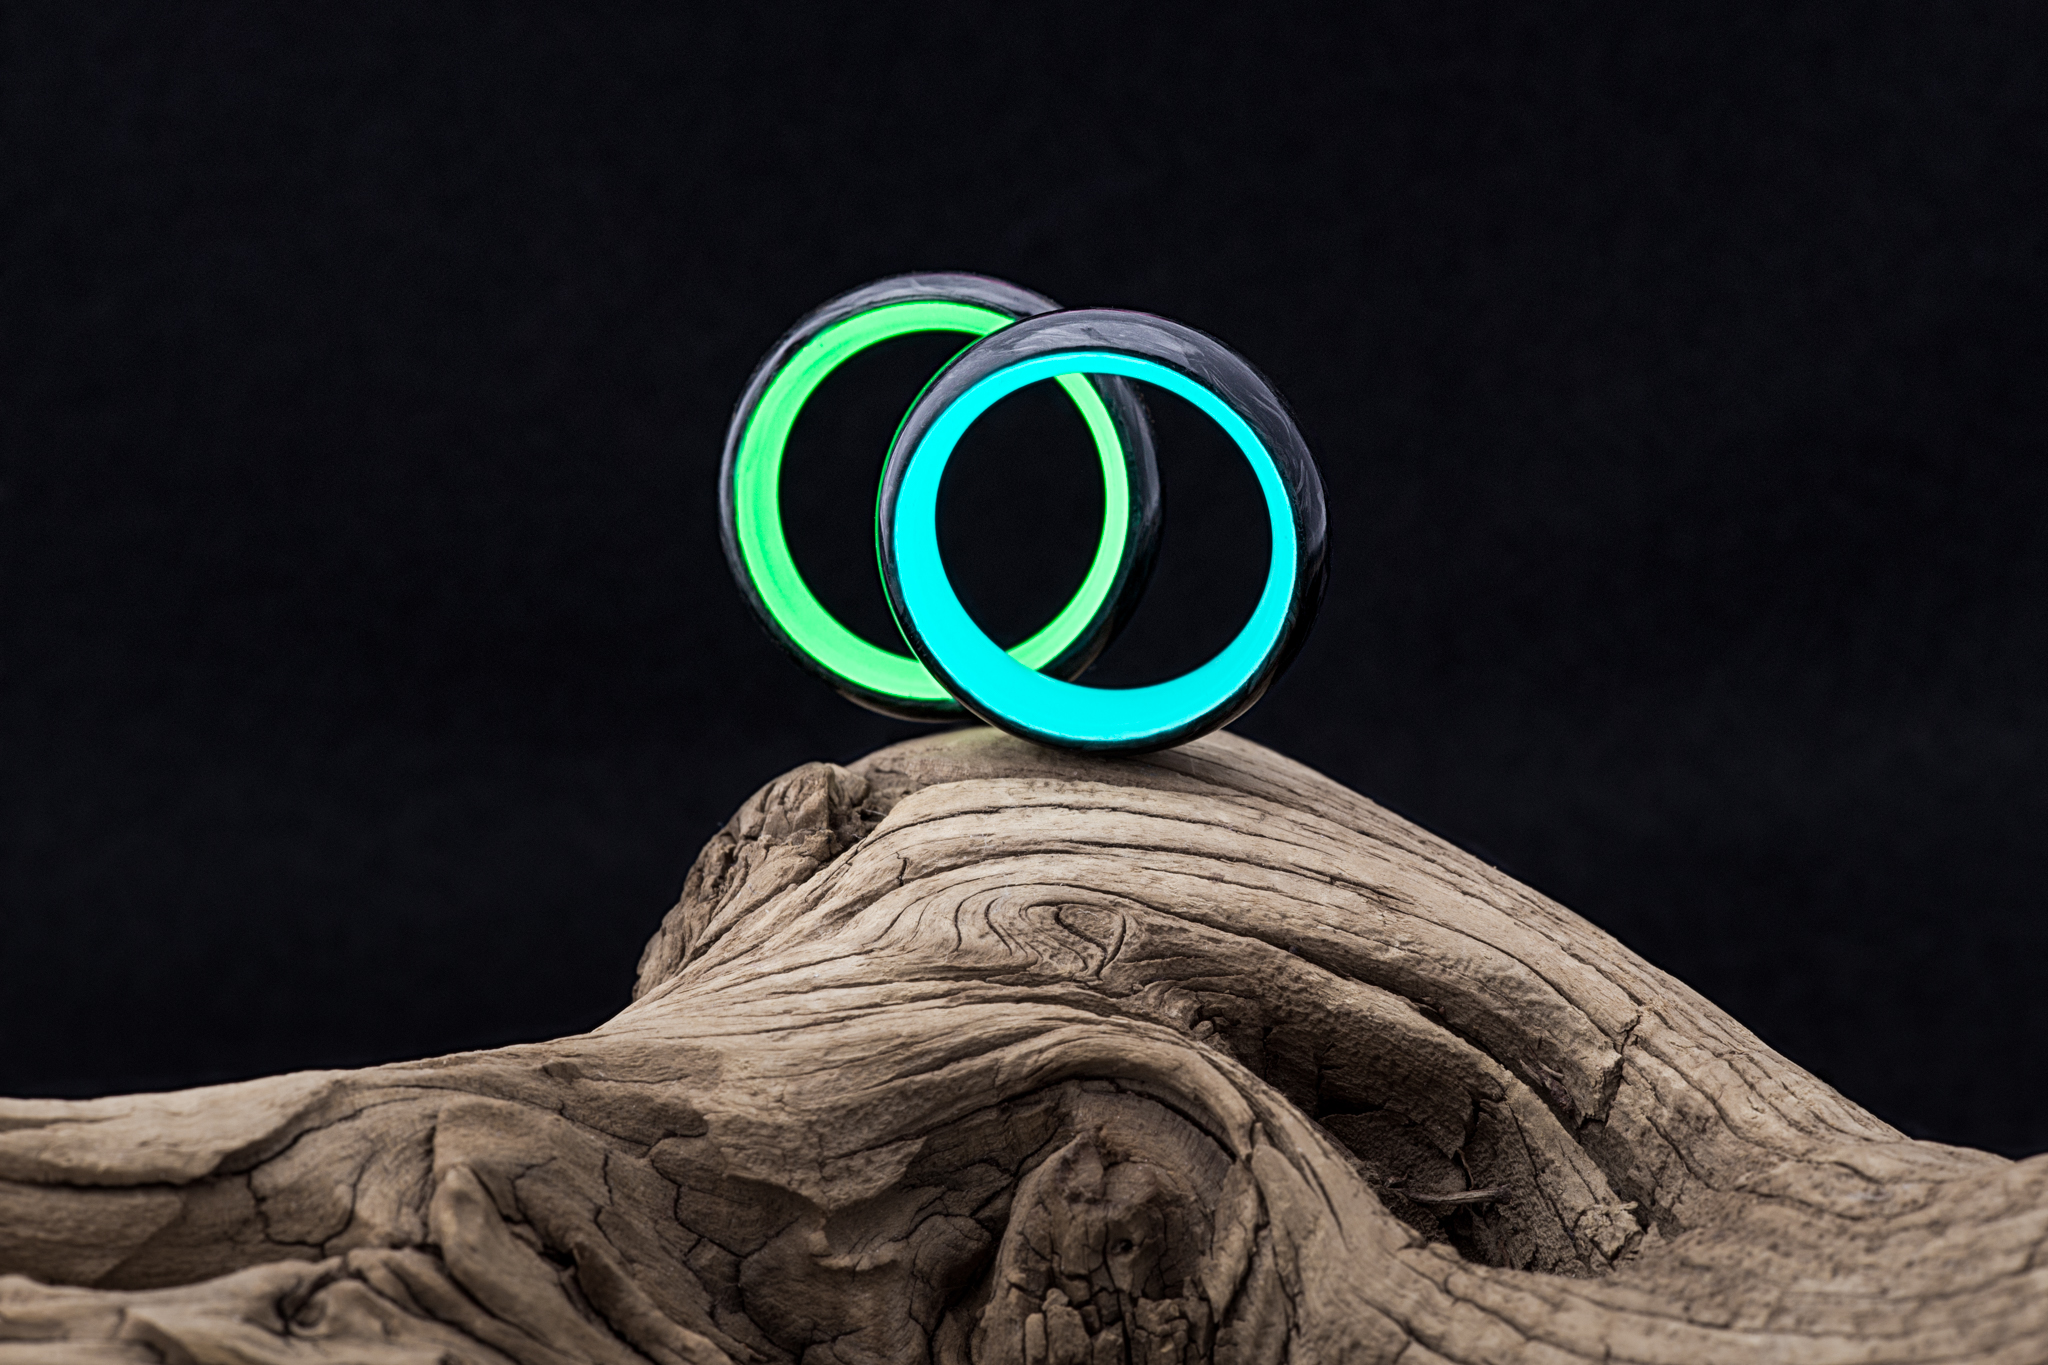 carbon fiber inspirational in by wedding glow glowing of dark the lume idea beautiful tm rings ring